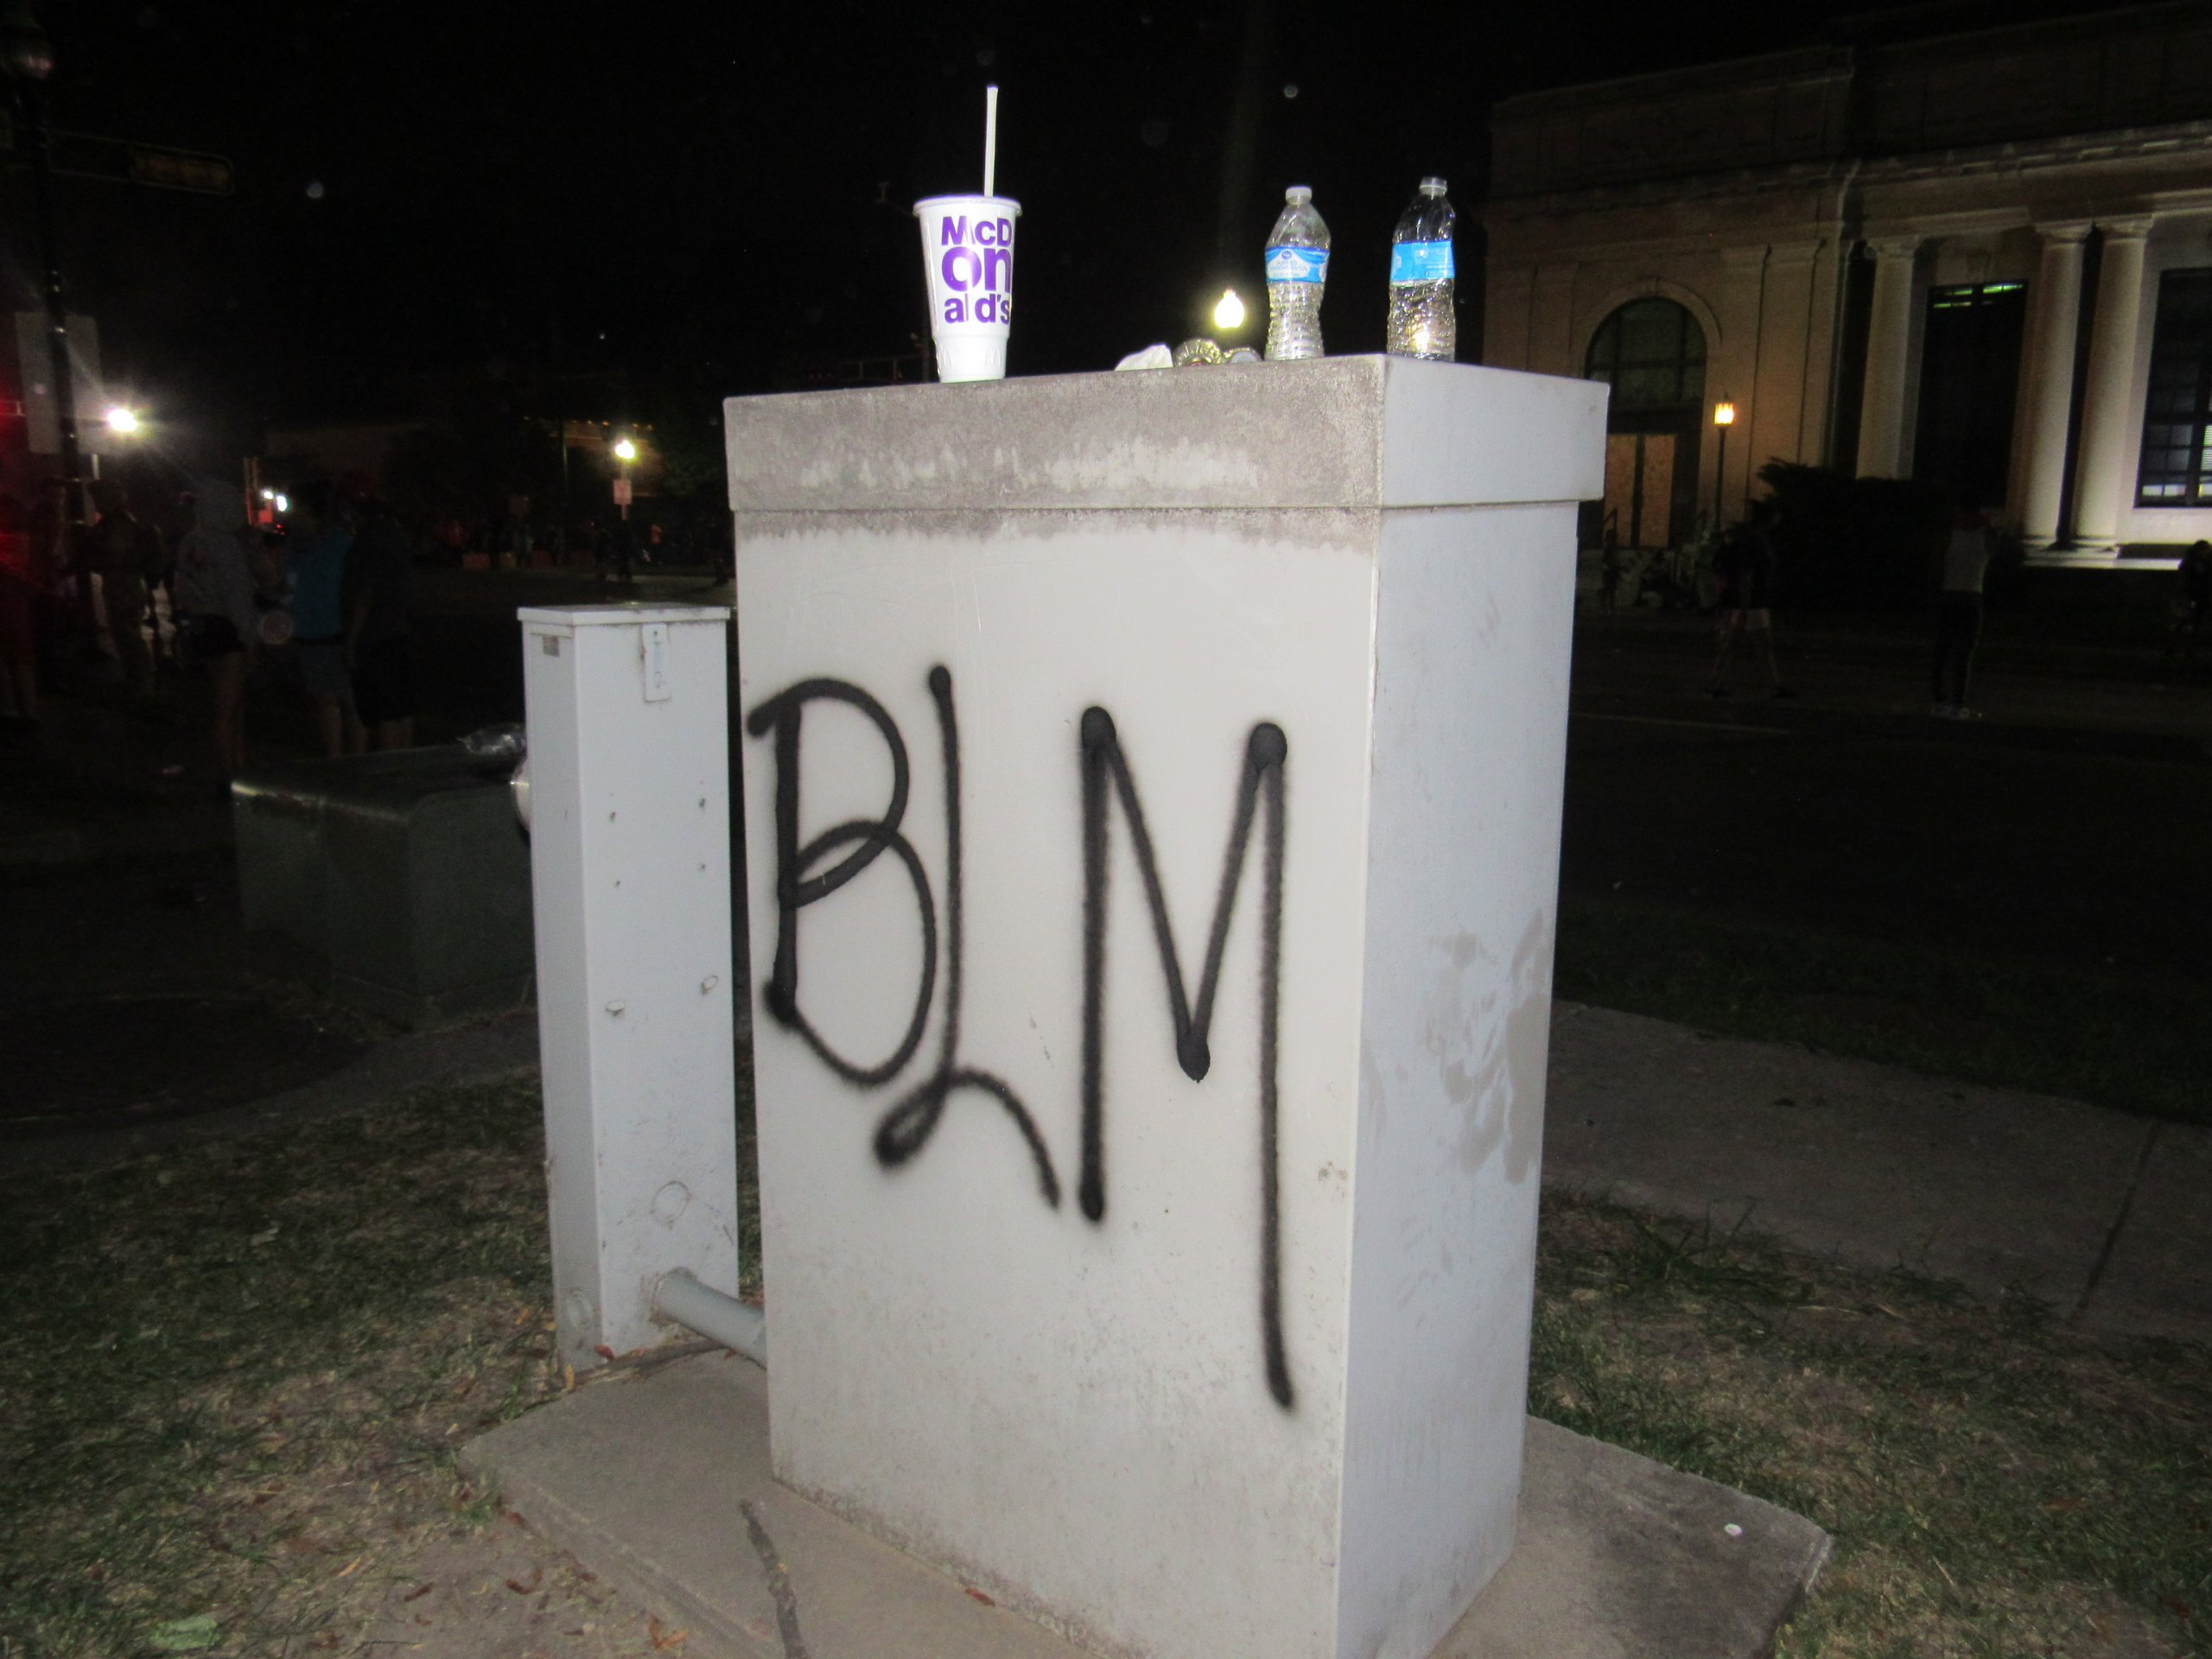 Graffiti riddled the area around the park in Kenosha. (Photo by Isiah Holmes)